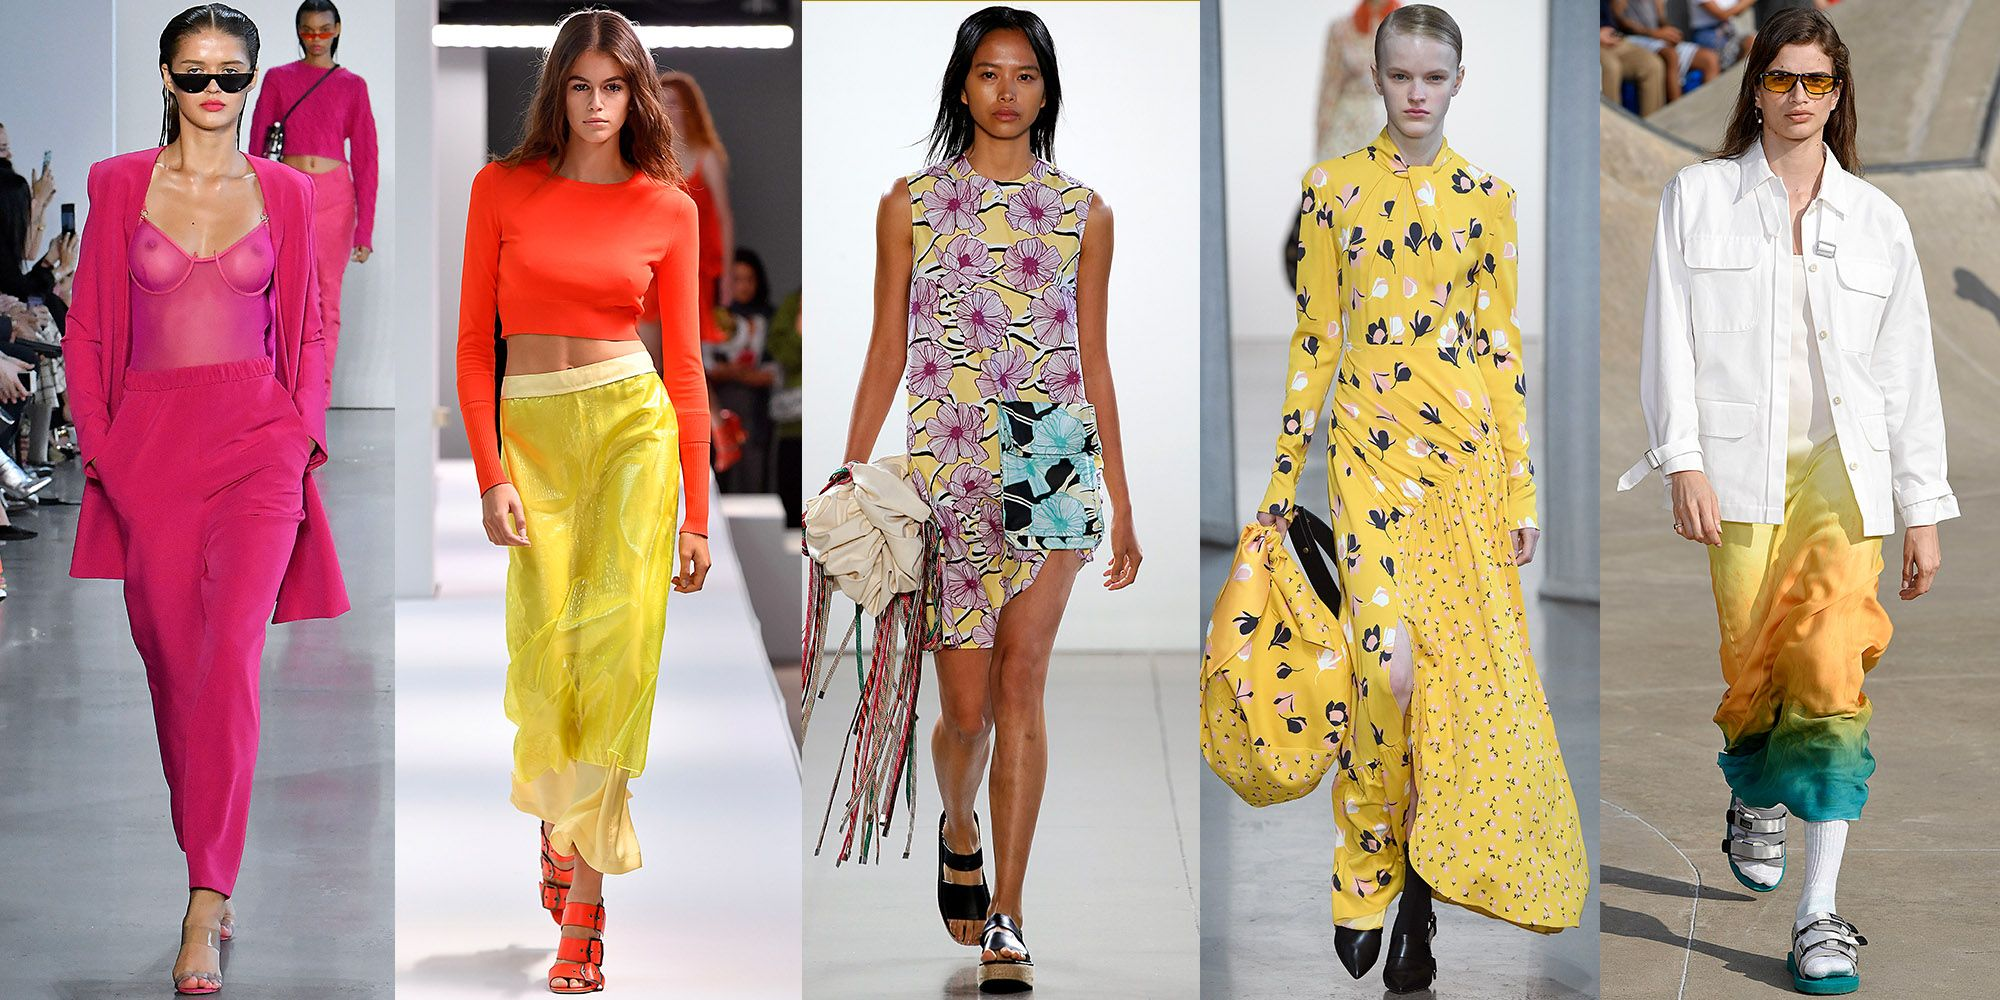 ELLE.com's Guide To The Biggest Fashion Trends Of Spring 2019